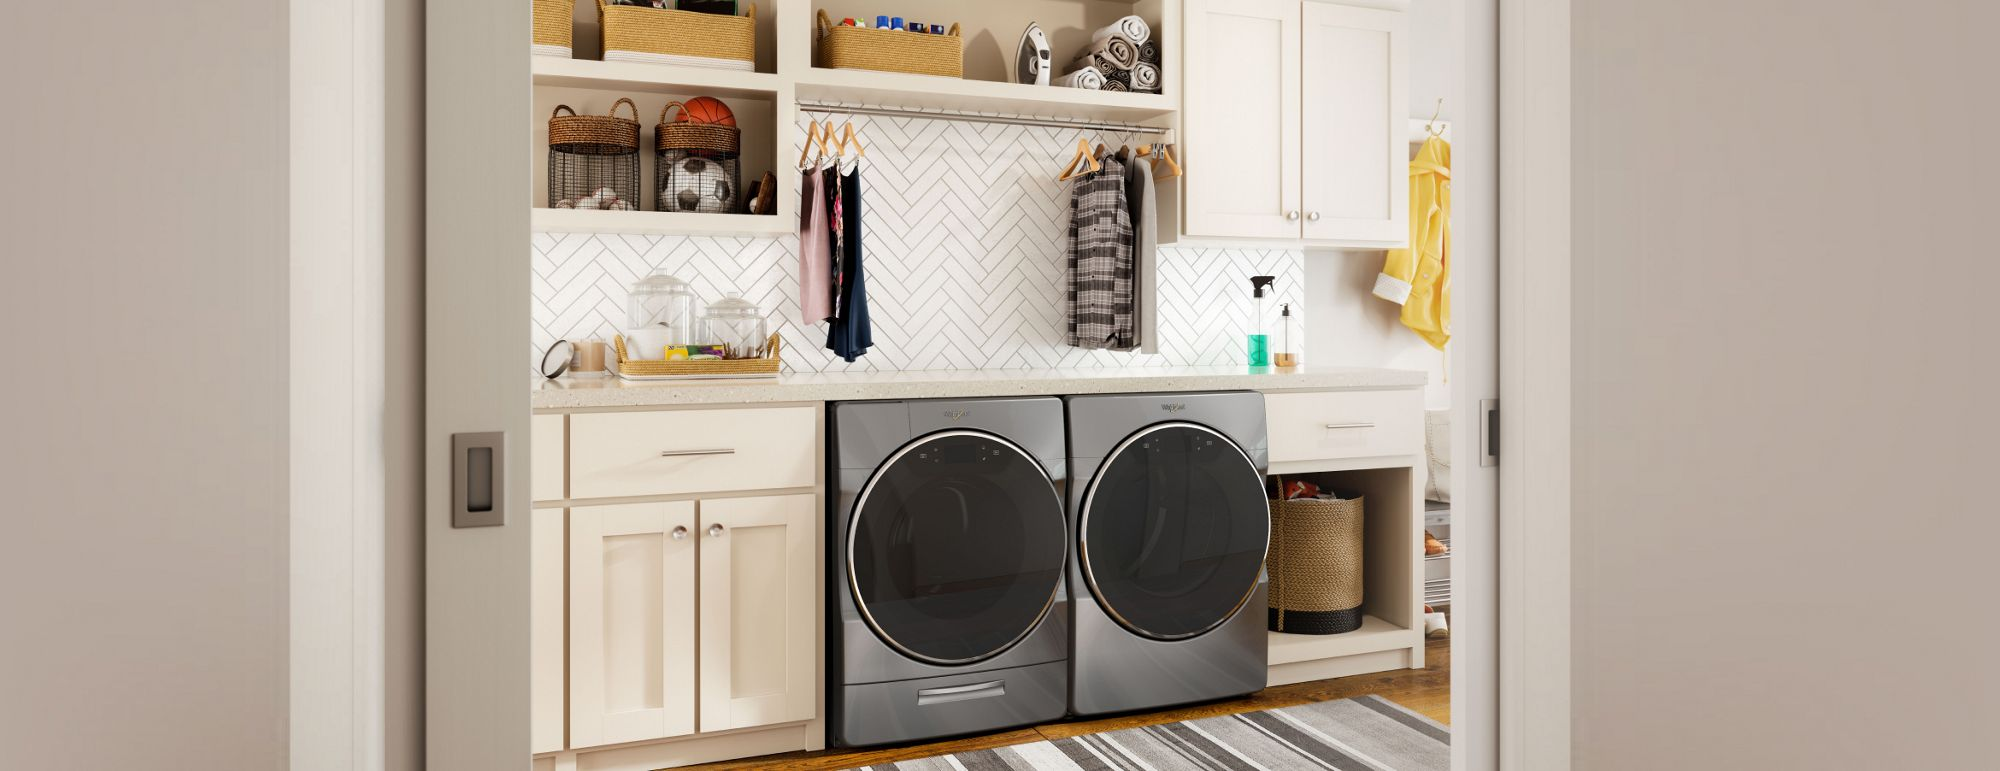 Explore Front Load Laundry Set Whirlpool